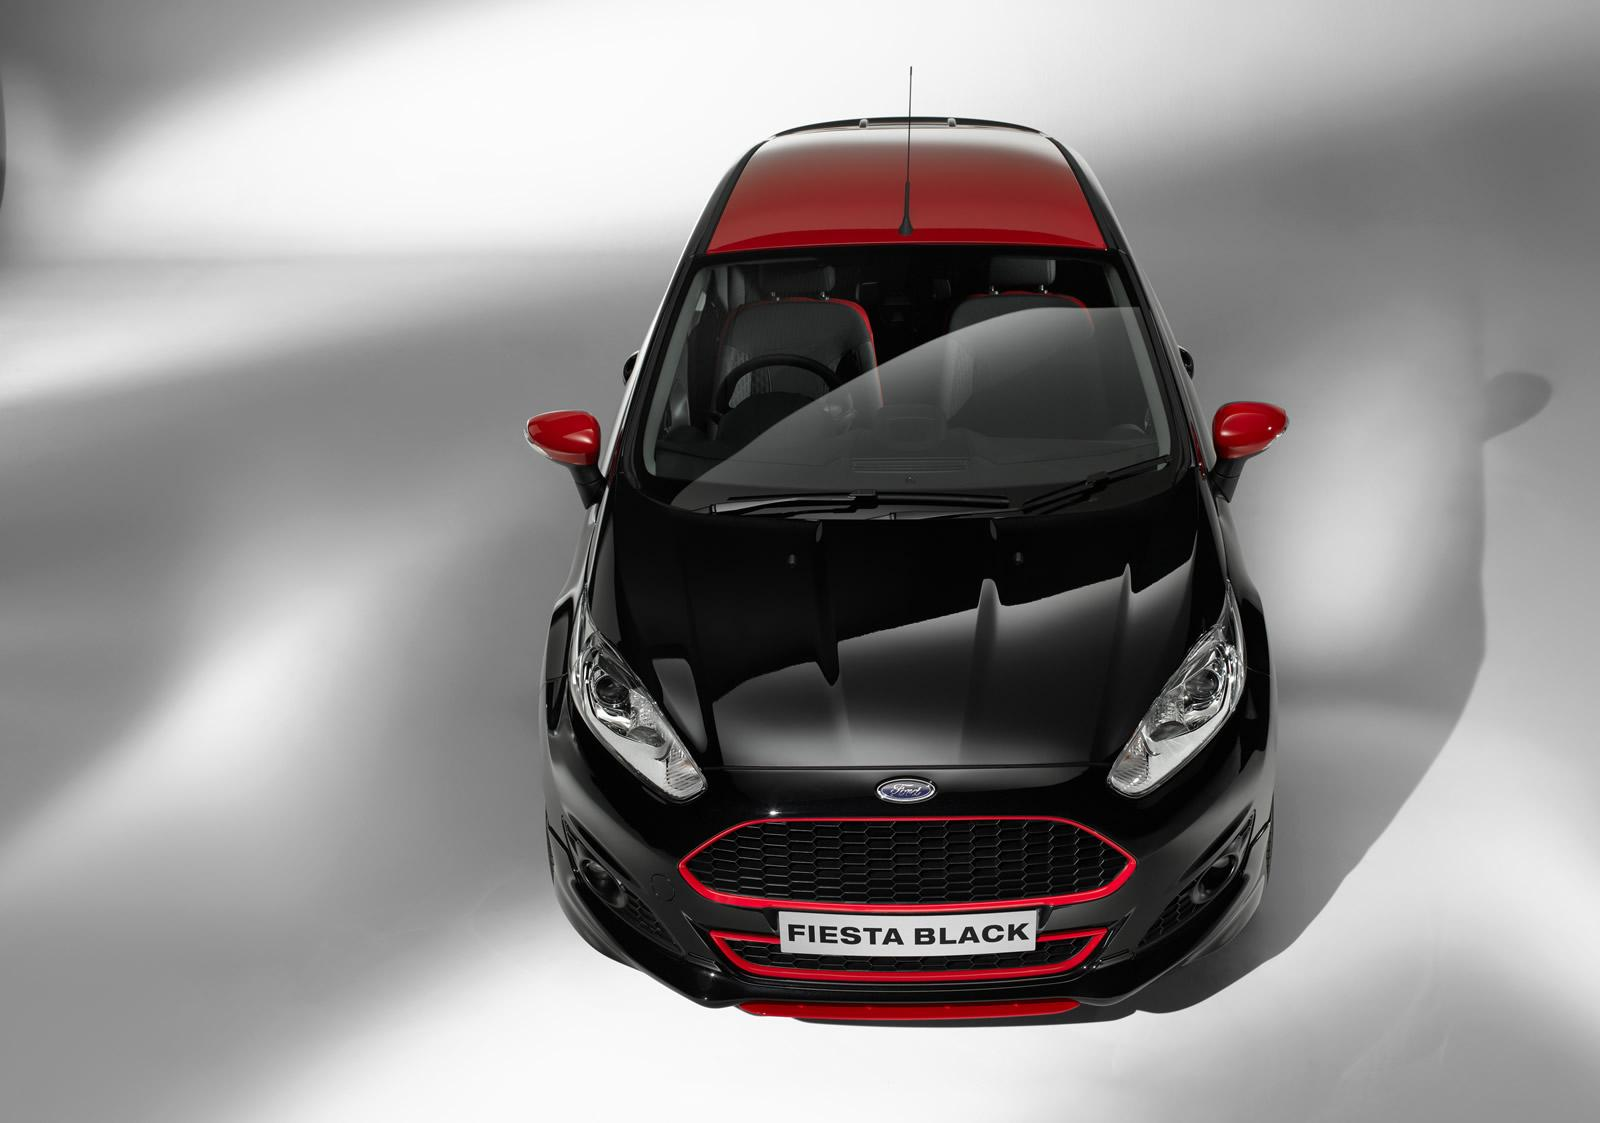 Ford Fiesta Red and Black Editions (4)